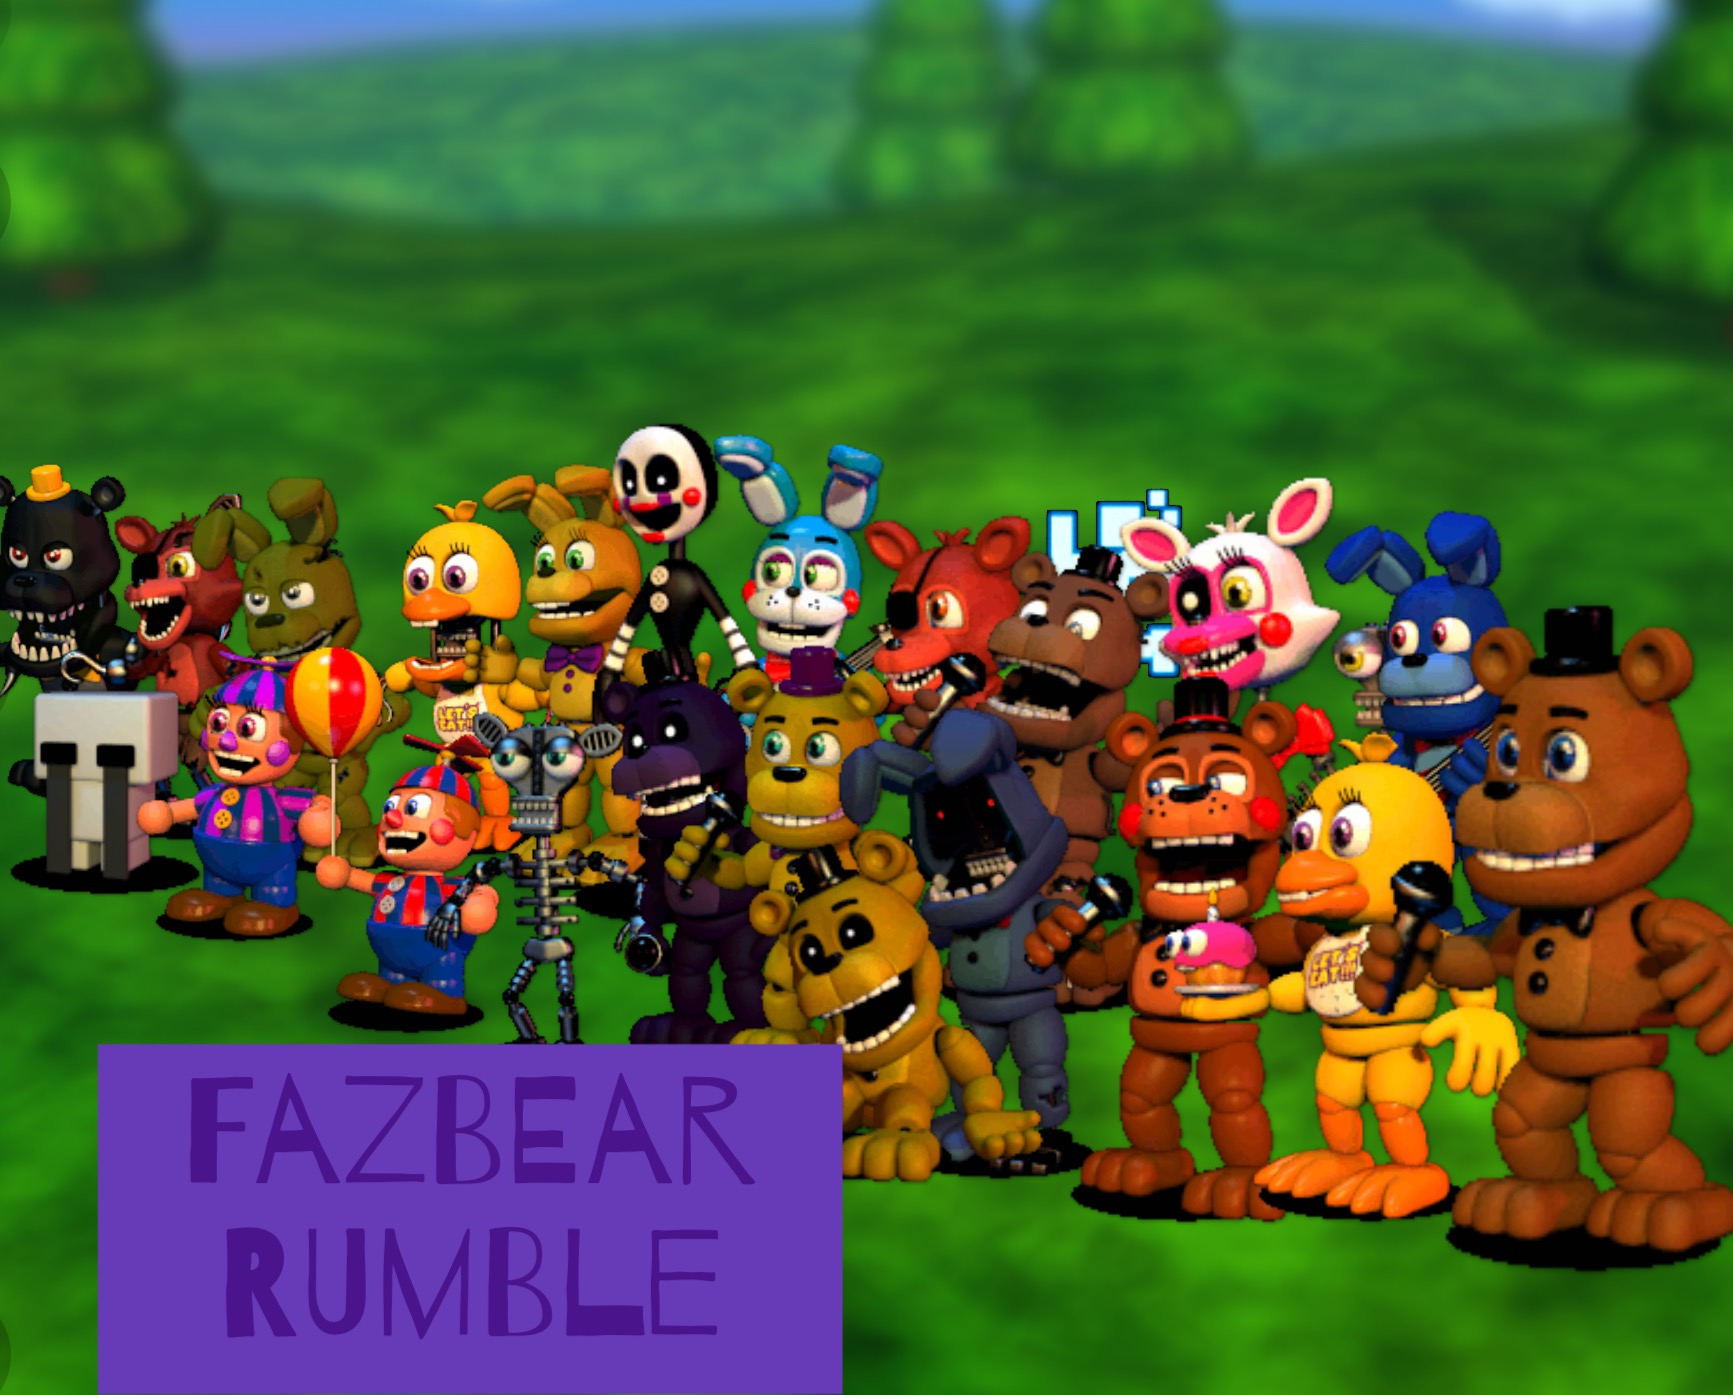 User blog:MarioVsSonicFan/FNAF World Fan Game | Five Nights at